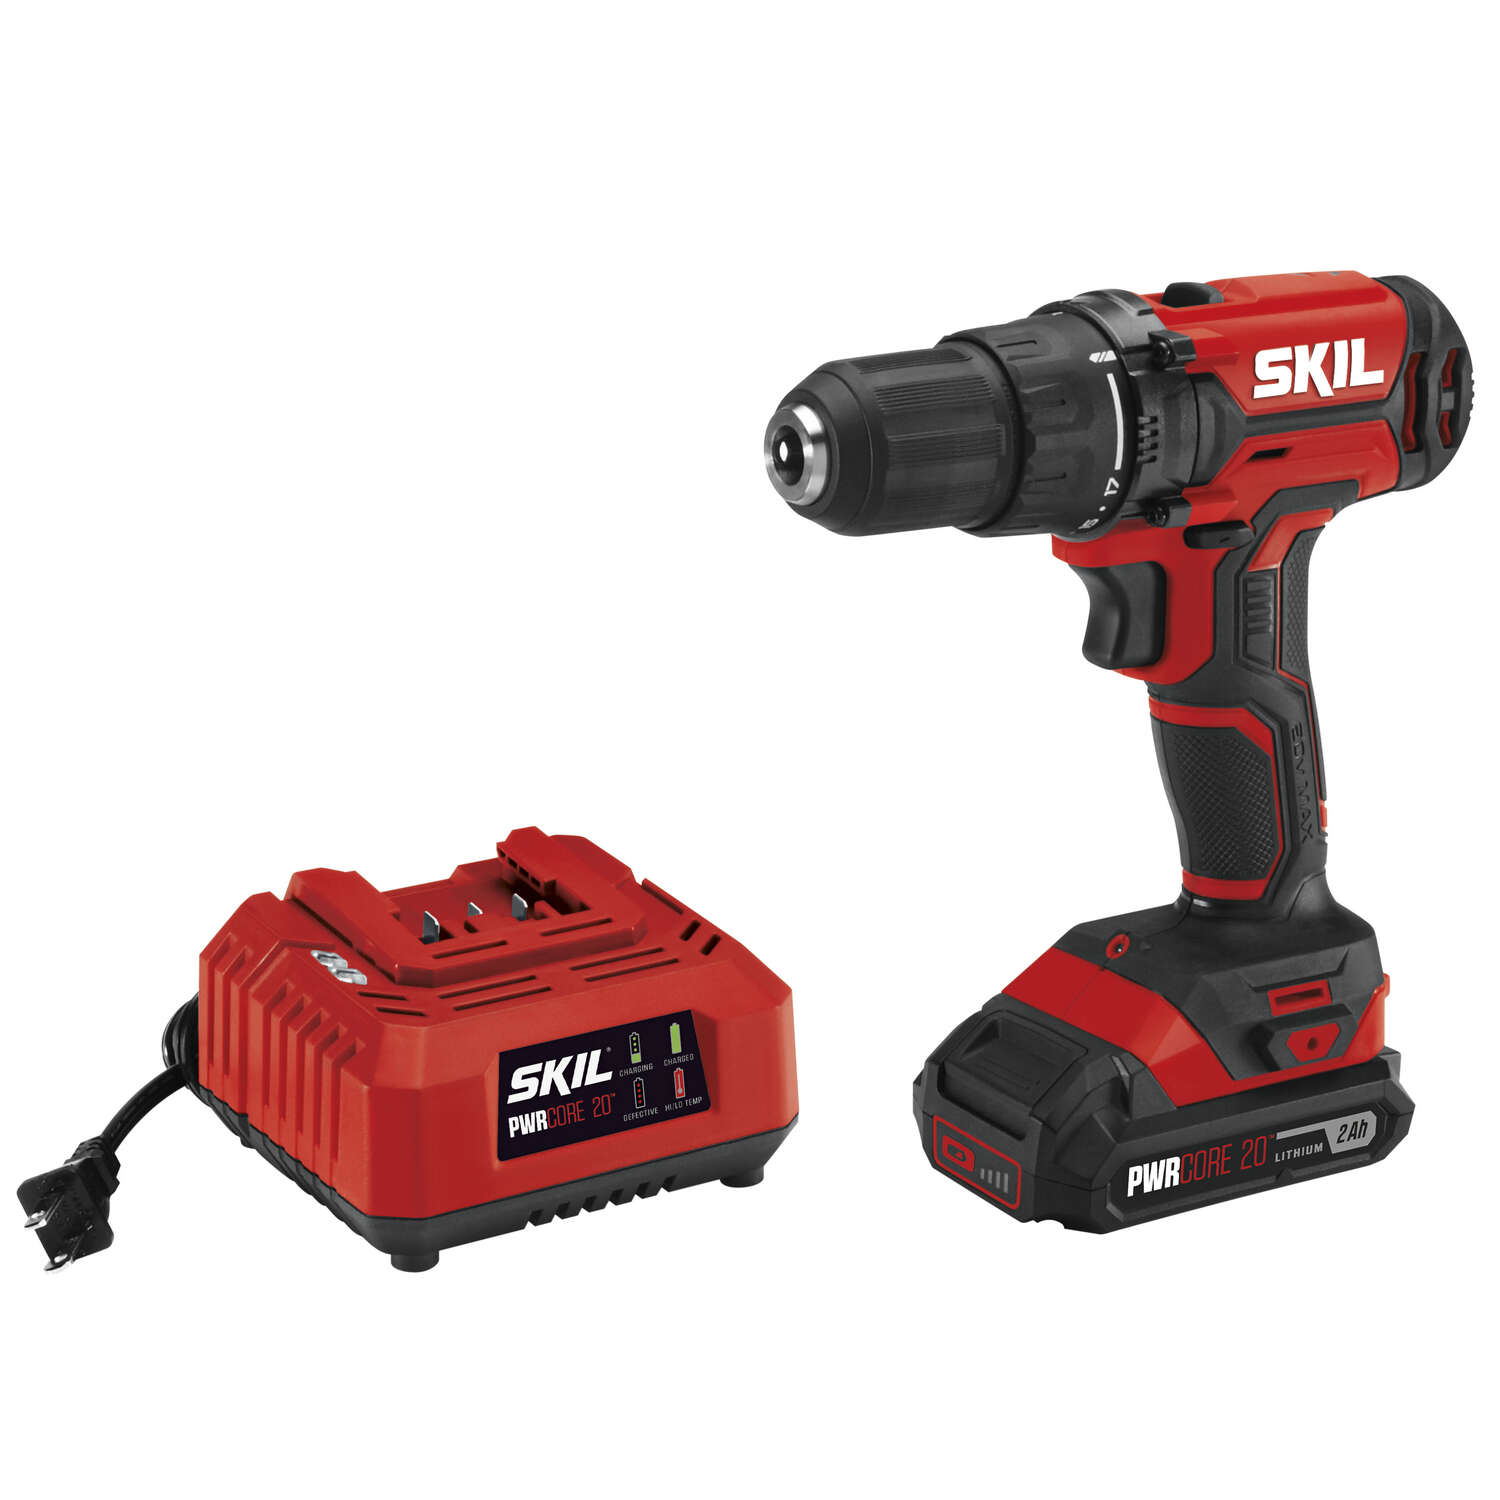 Skil  20 volt 1/2 in. Brushed  Cordless Drill Driver  Kit (Battery & Charger)